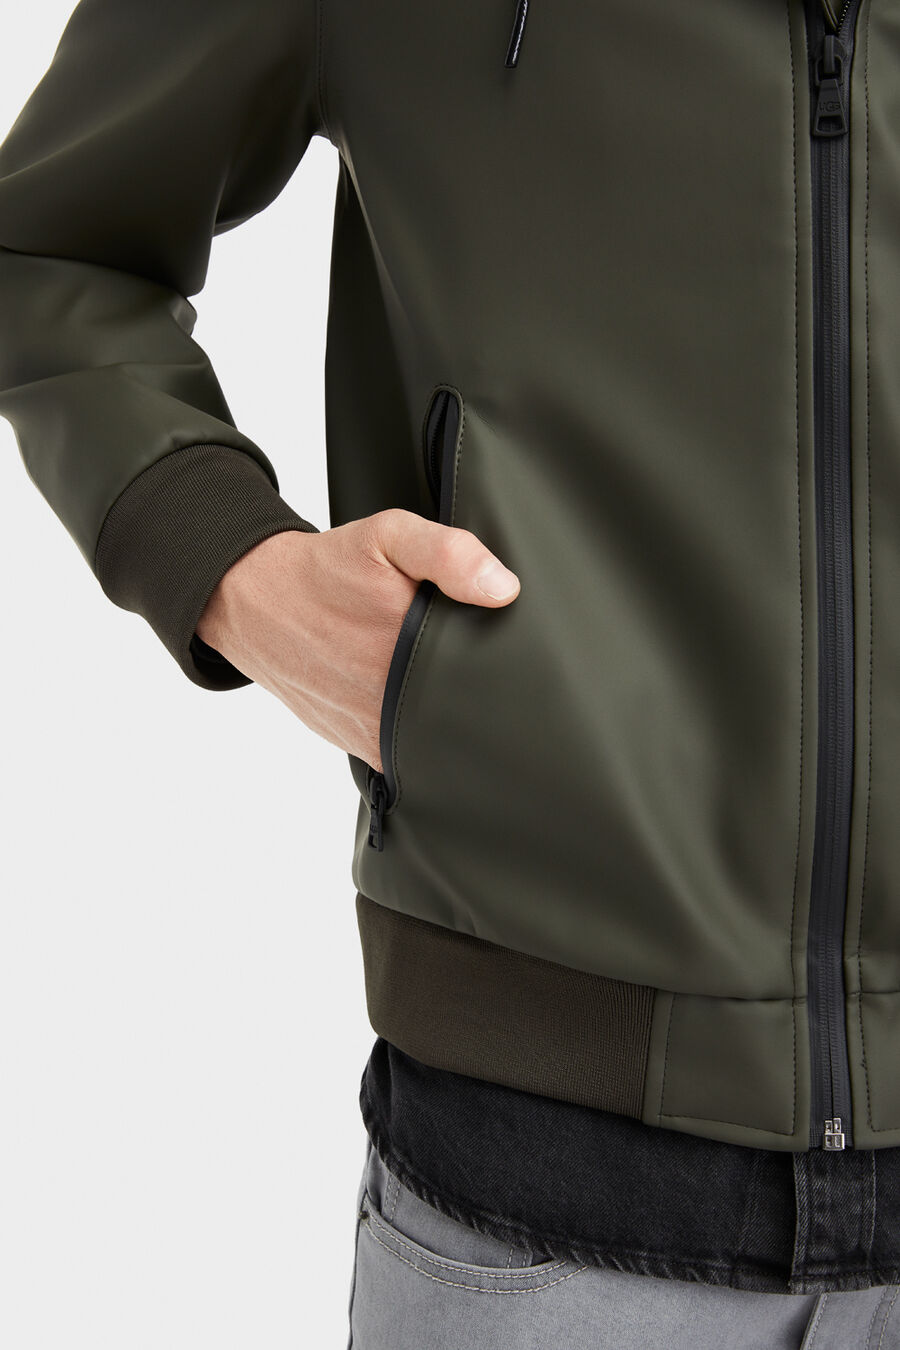 Diego Rubberized Hoodie - Image 3 of 6